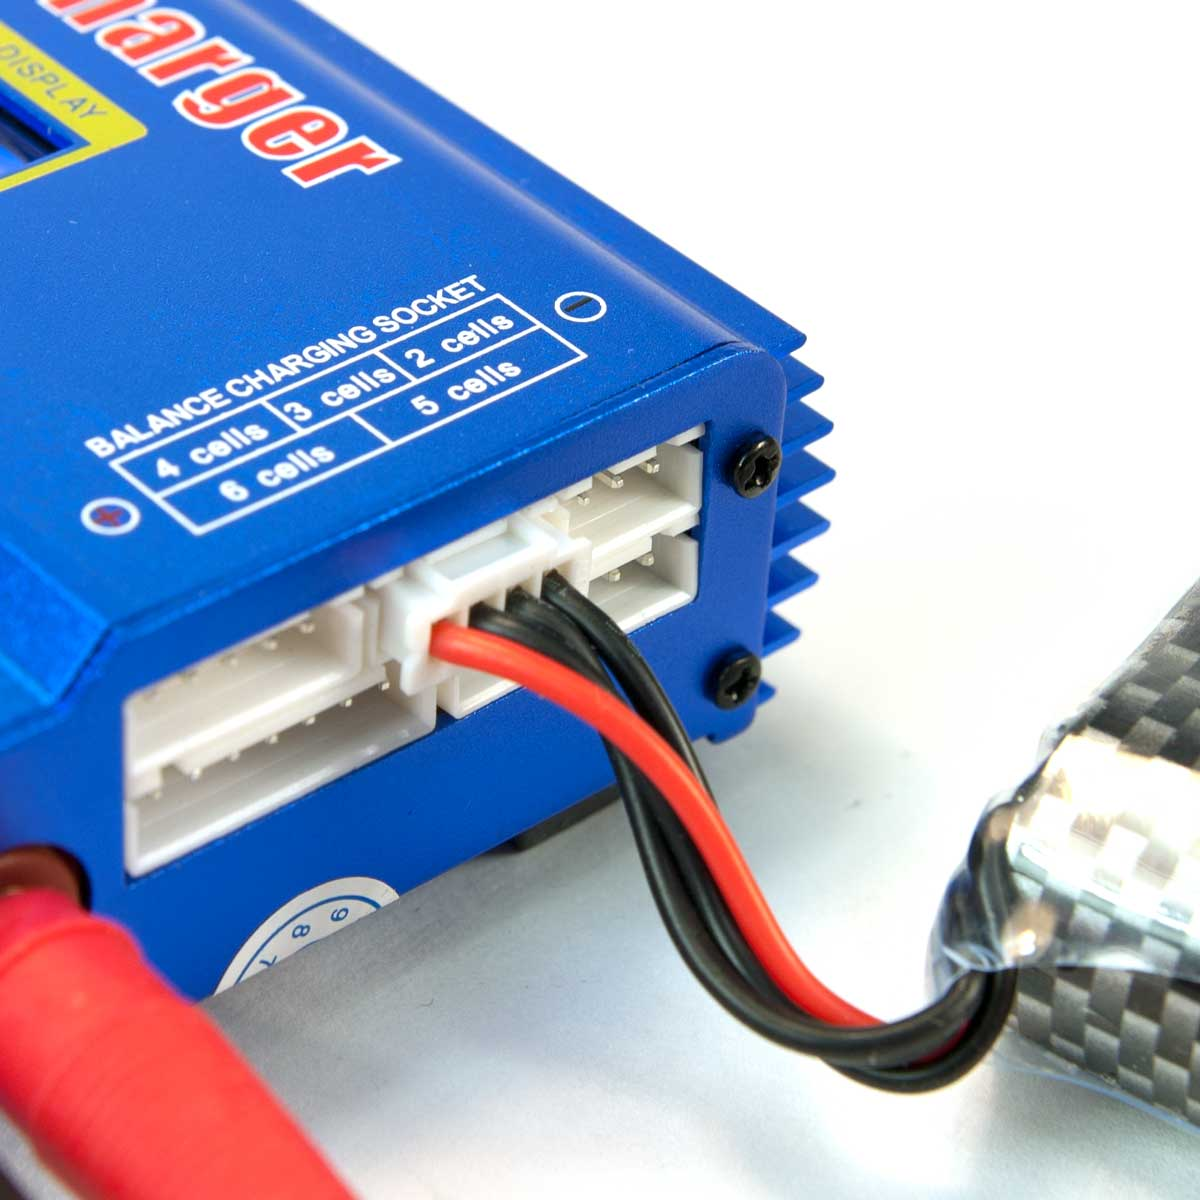 How To Charge Lipo Batteries Propwashed 12v Battery Charger Circuit With Auto Cut Off Circuits All Decent Chargers Will Have Balance Ports Like This